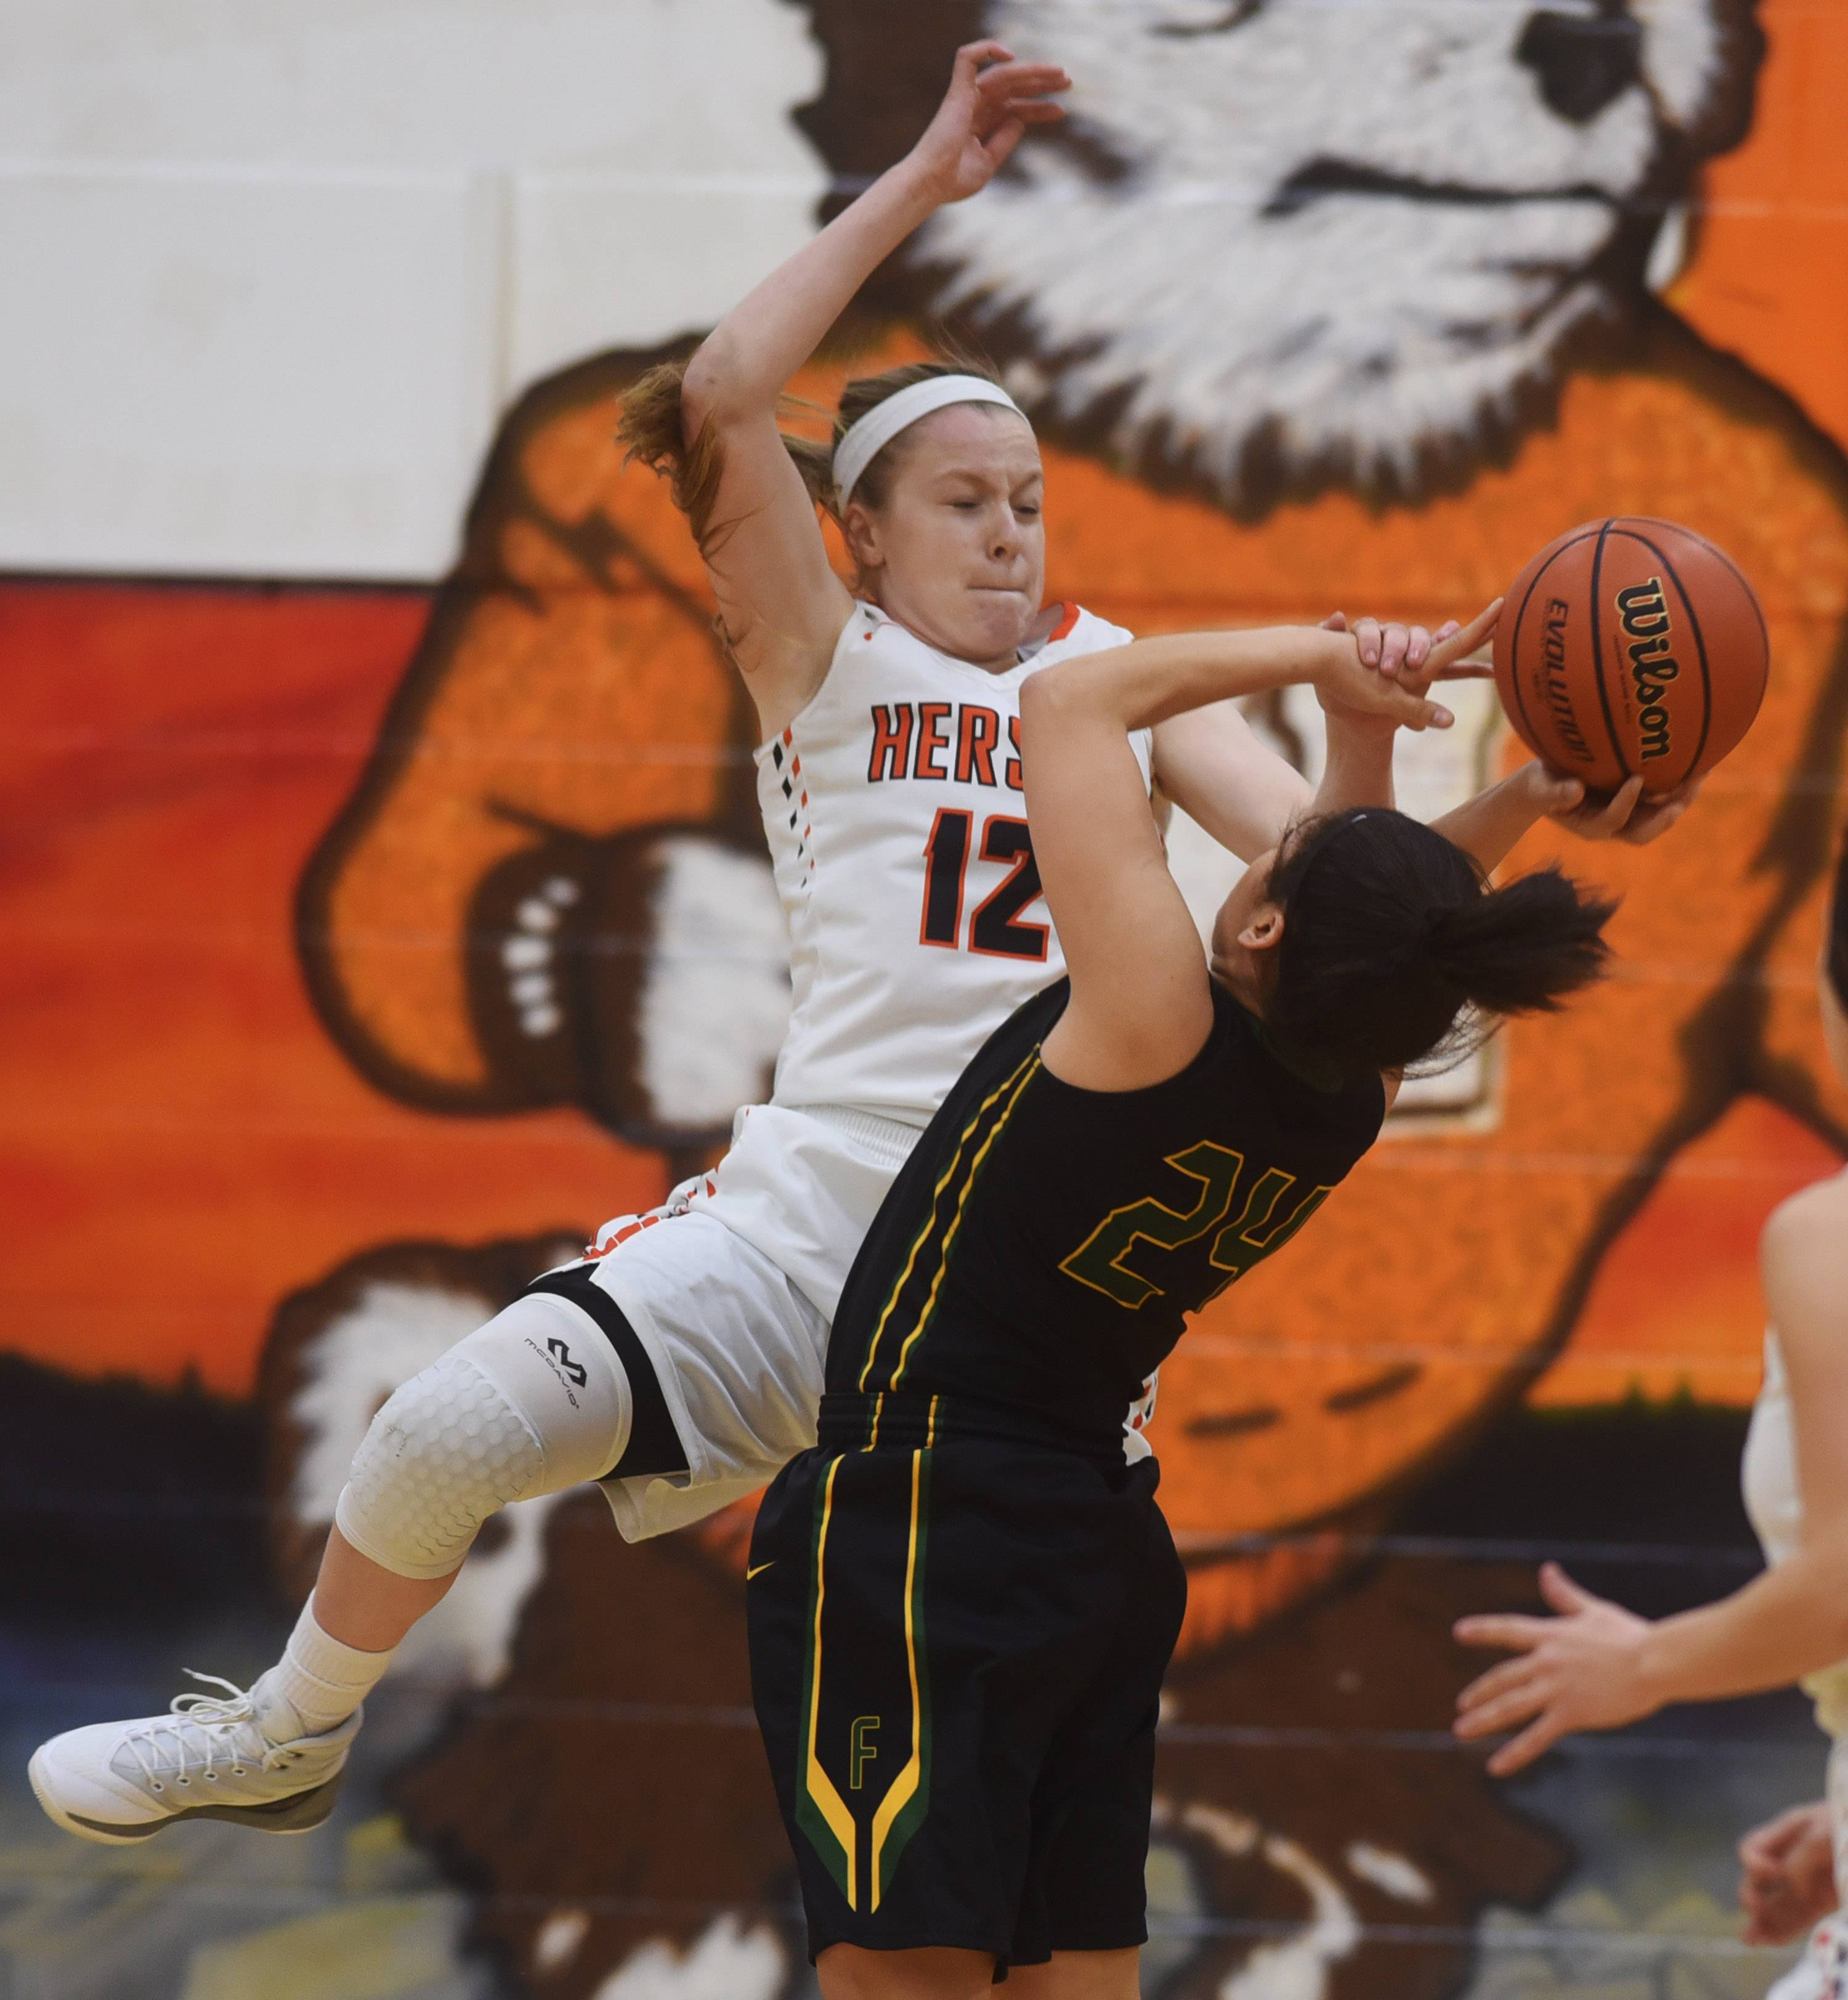 Hersey's Claire Gritt, left, fouls Fremd's Midori Williams during the Mid-Suburban League championship game in Arlington Heights on Wednesday.